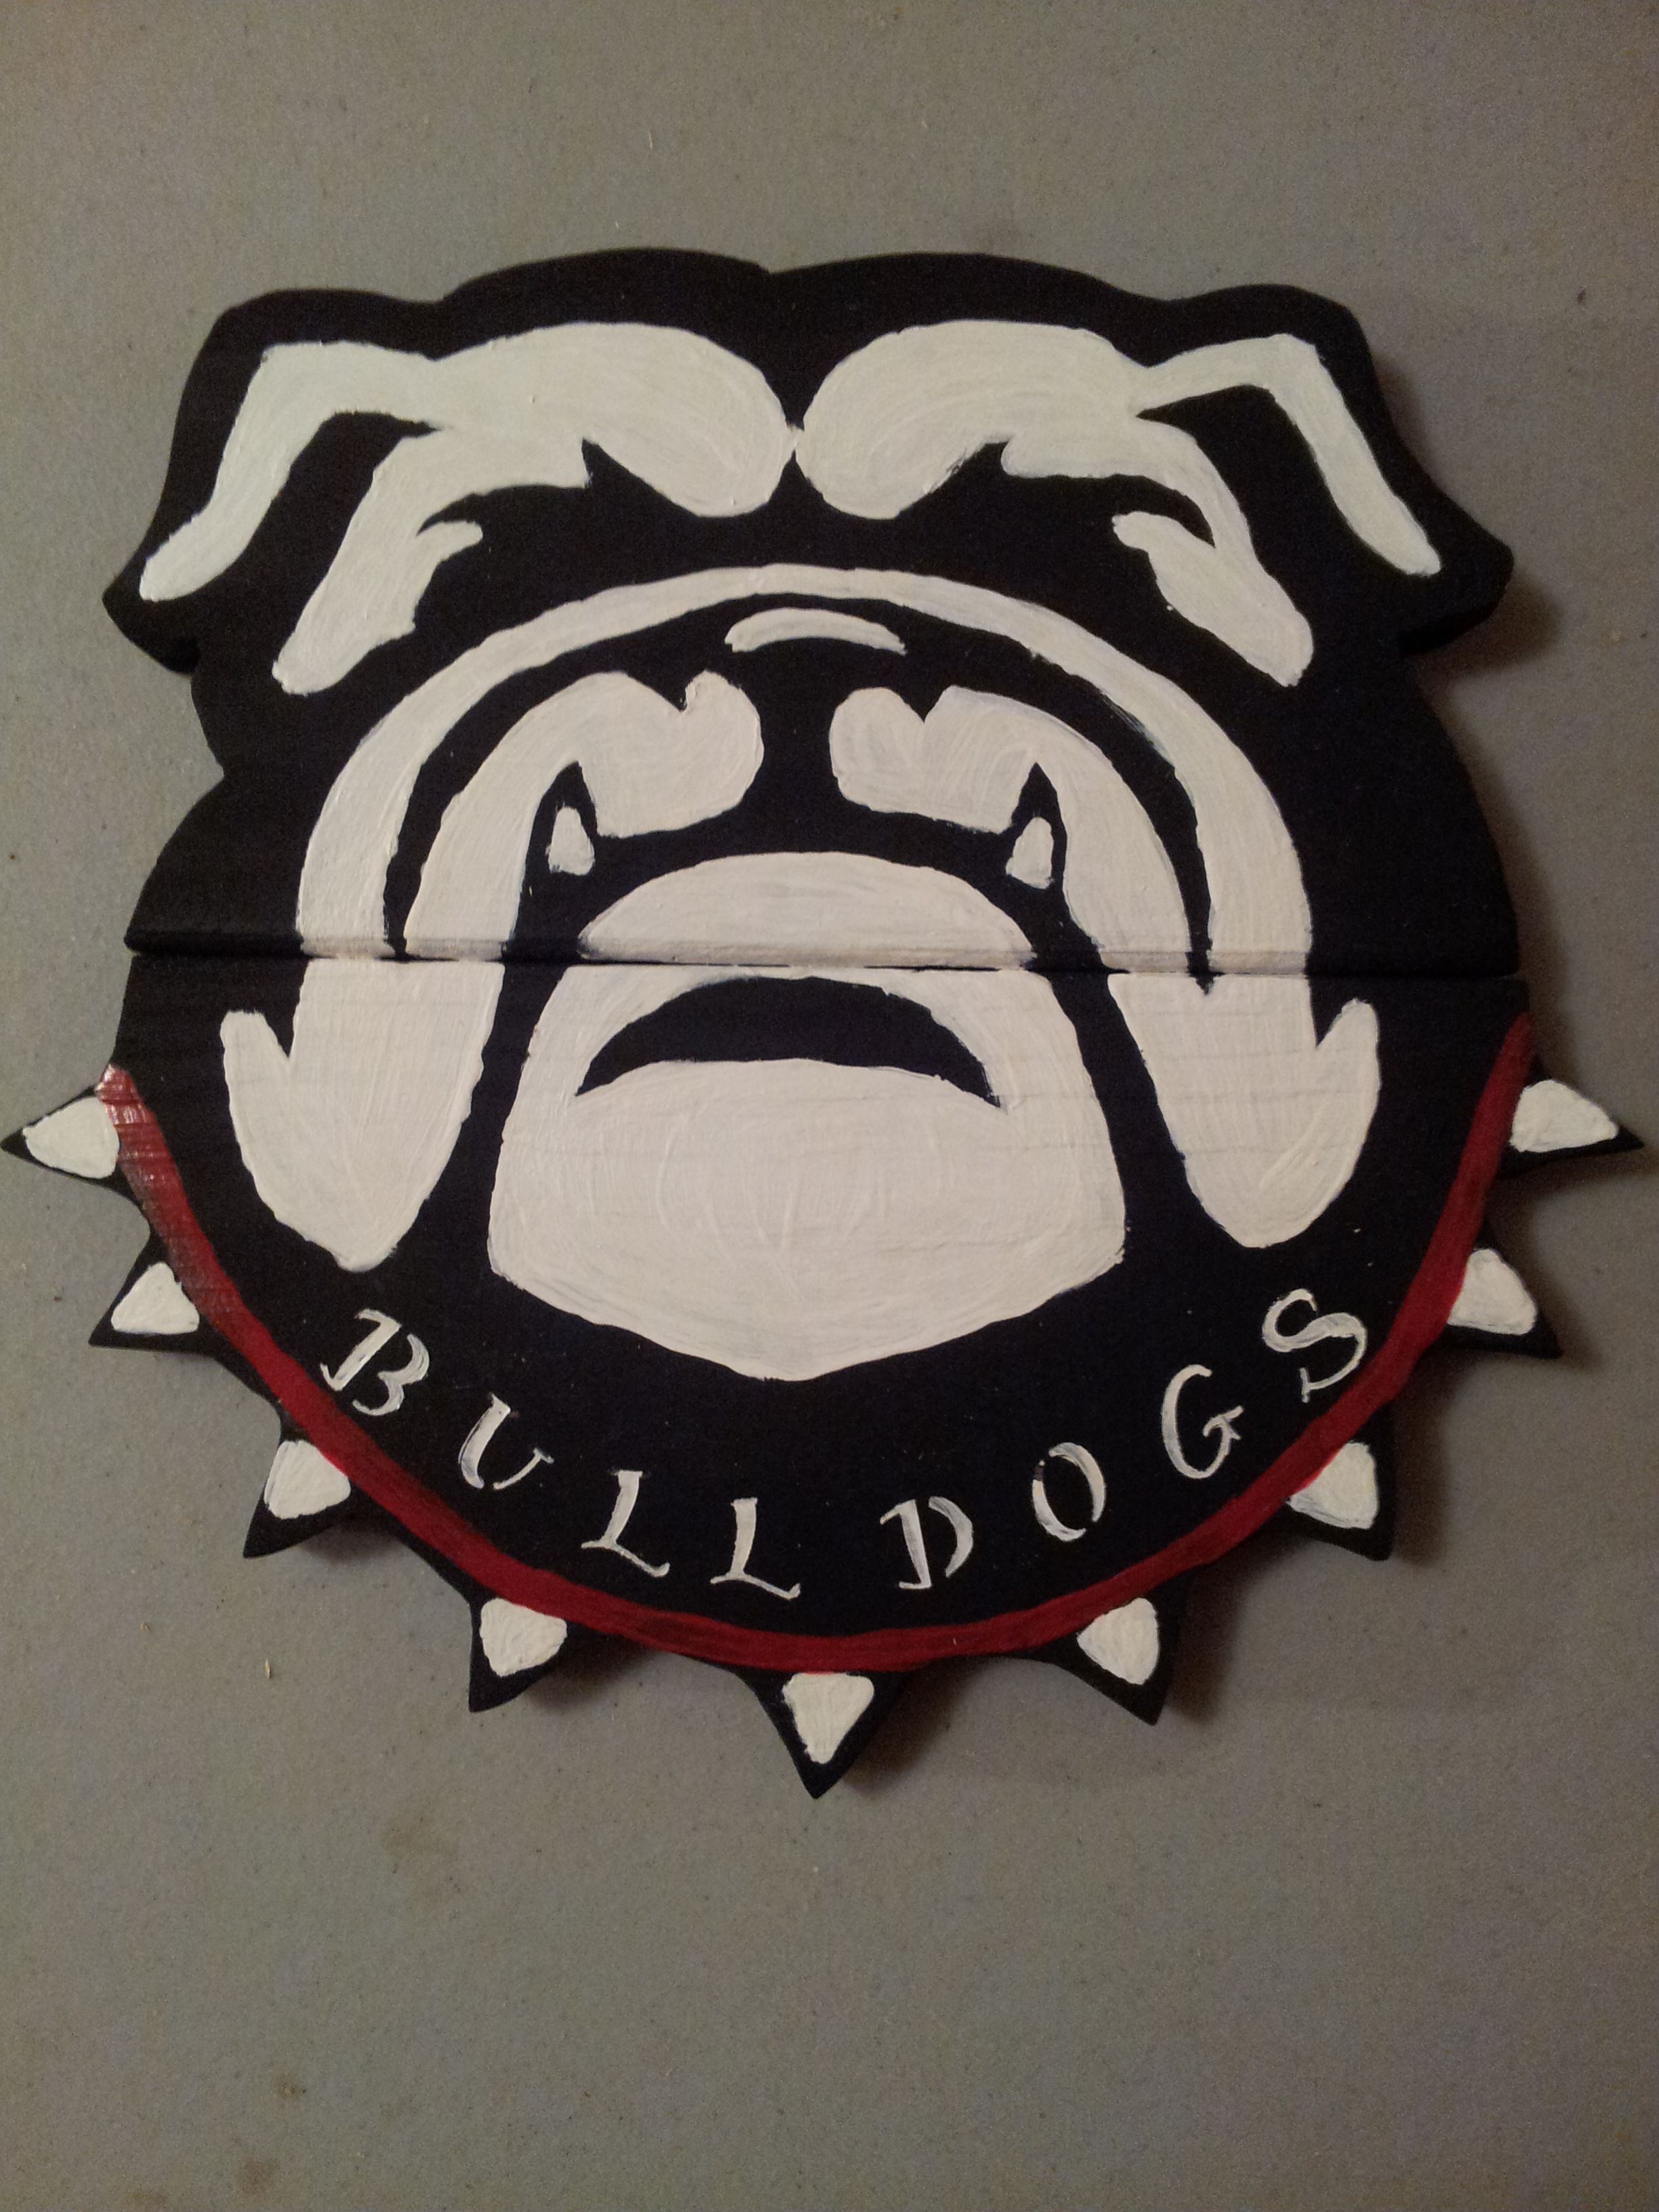 georgia bulldog reclaimed wooden sign black white and red paint